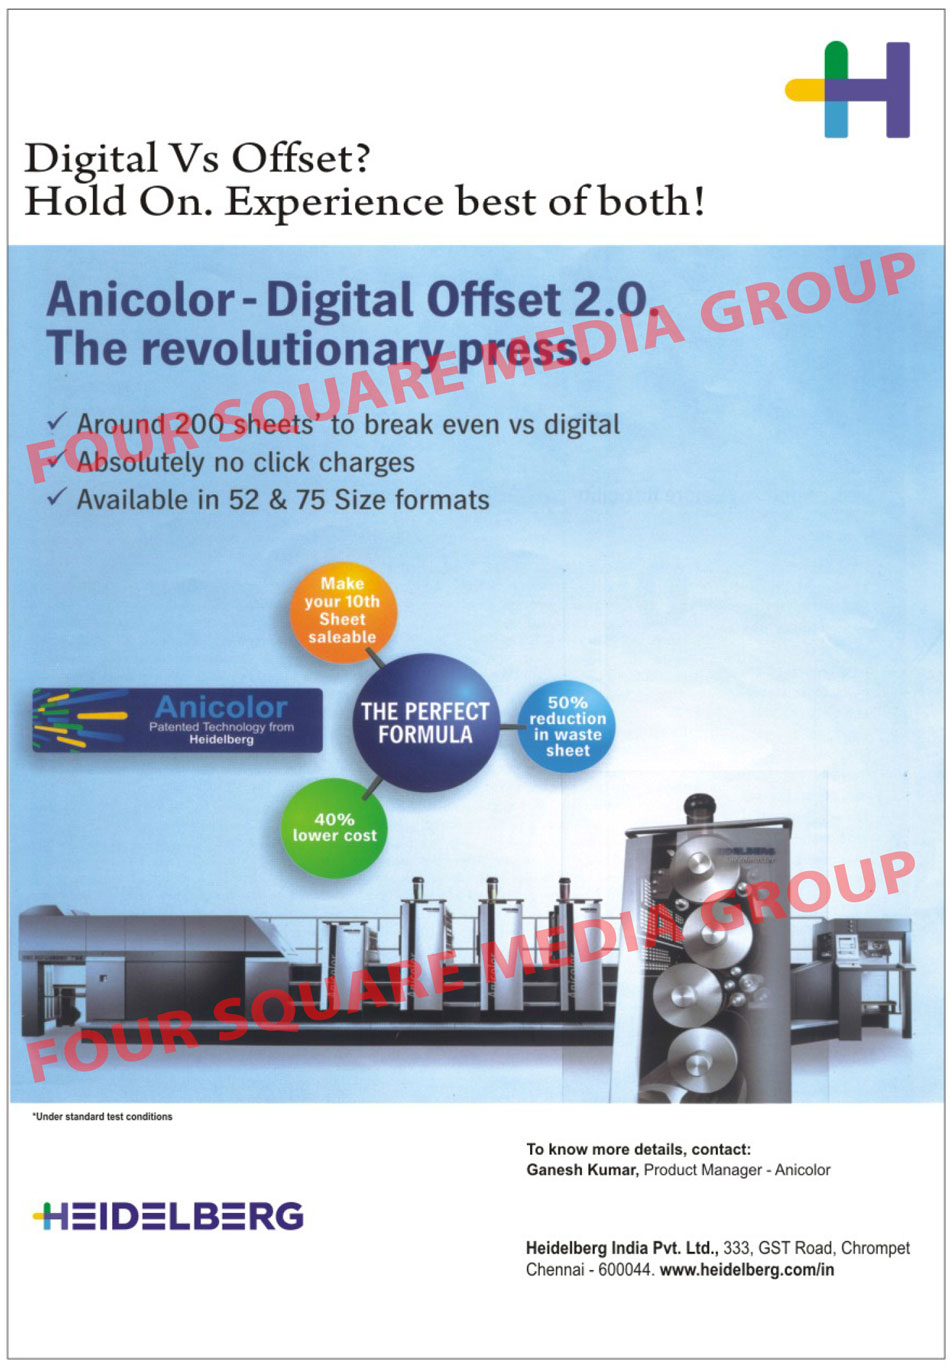 Digital System, Flexible Setup, Offset System, Anicolor Inking Unit